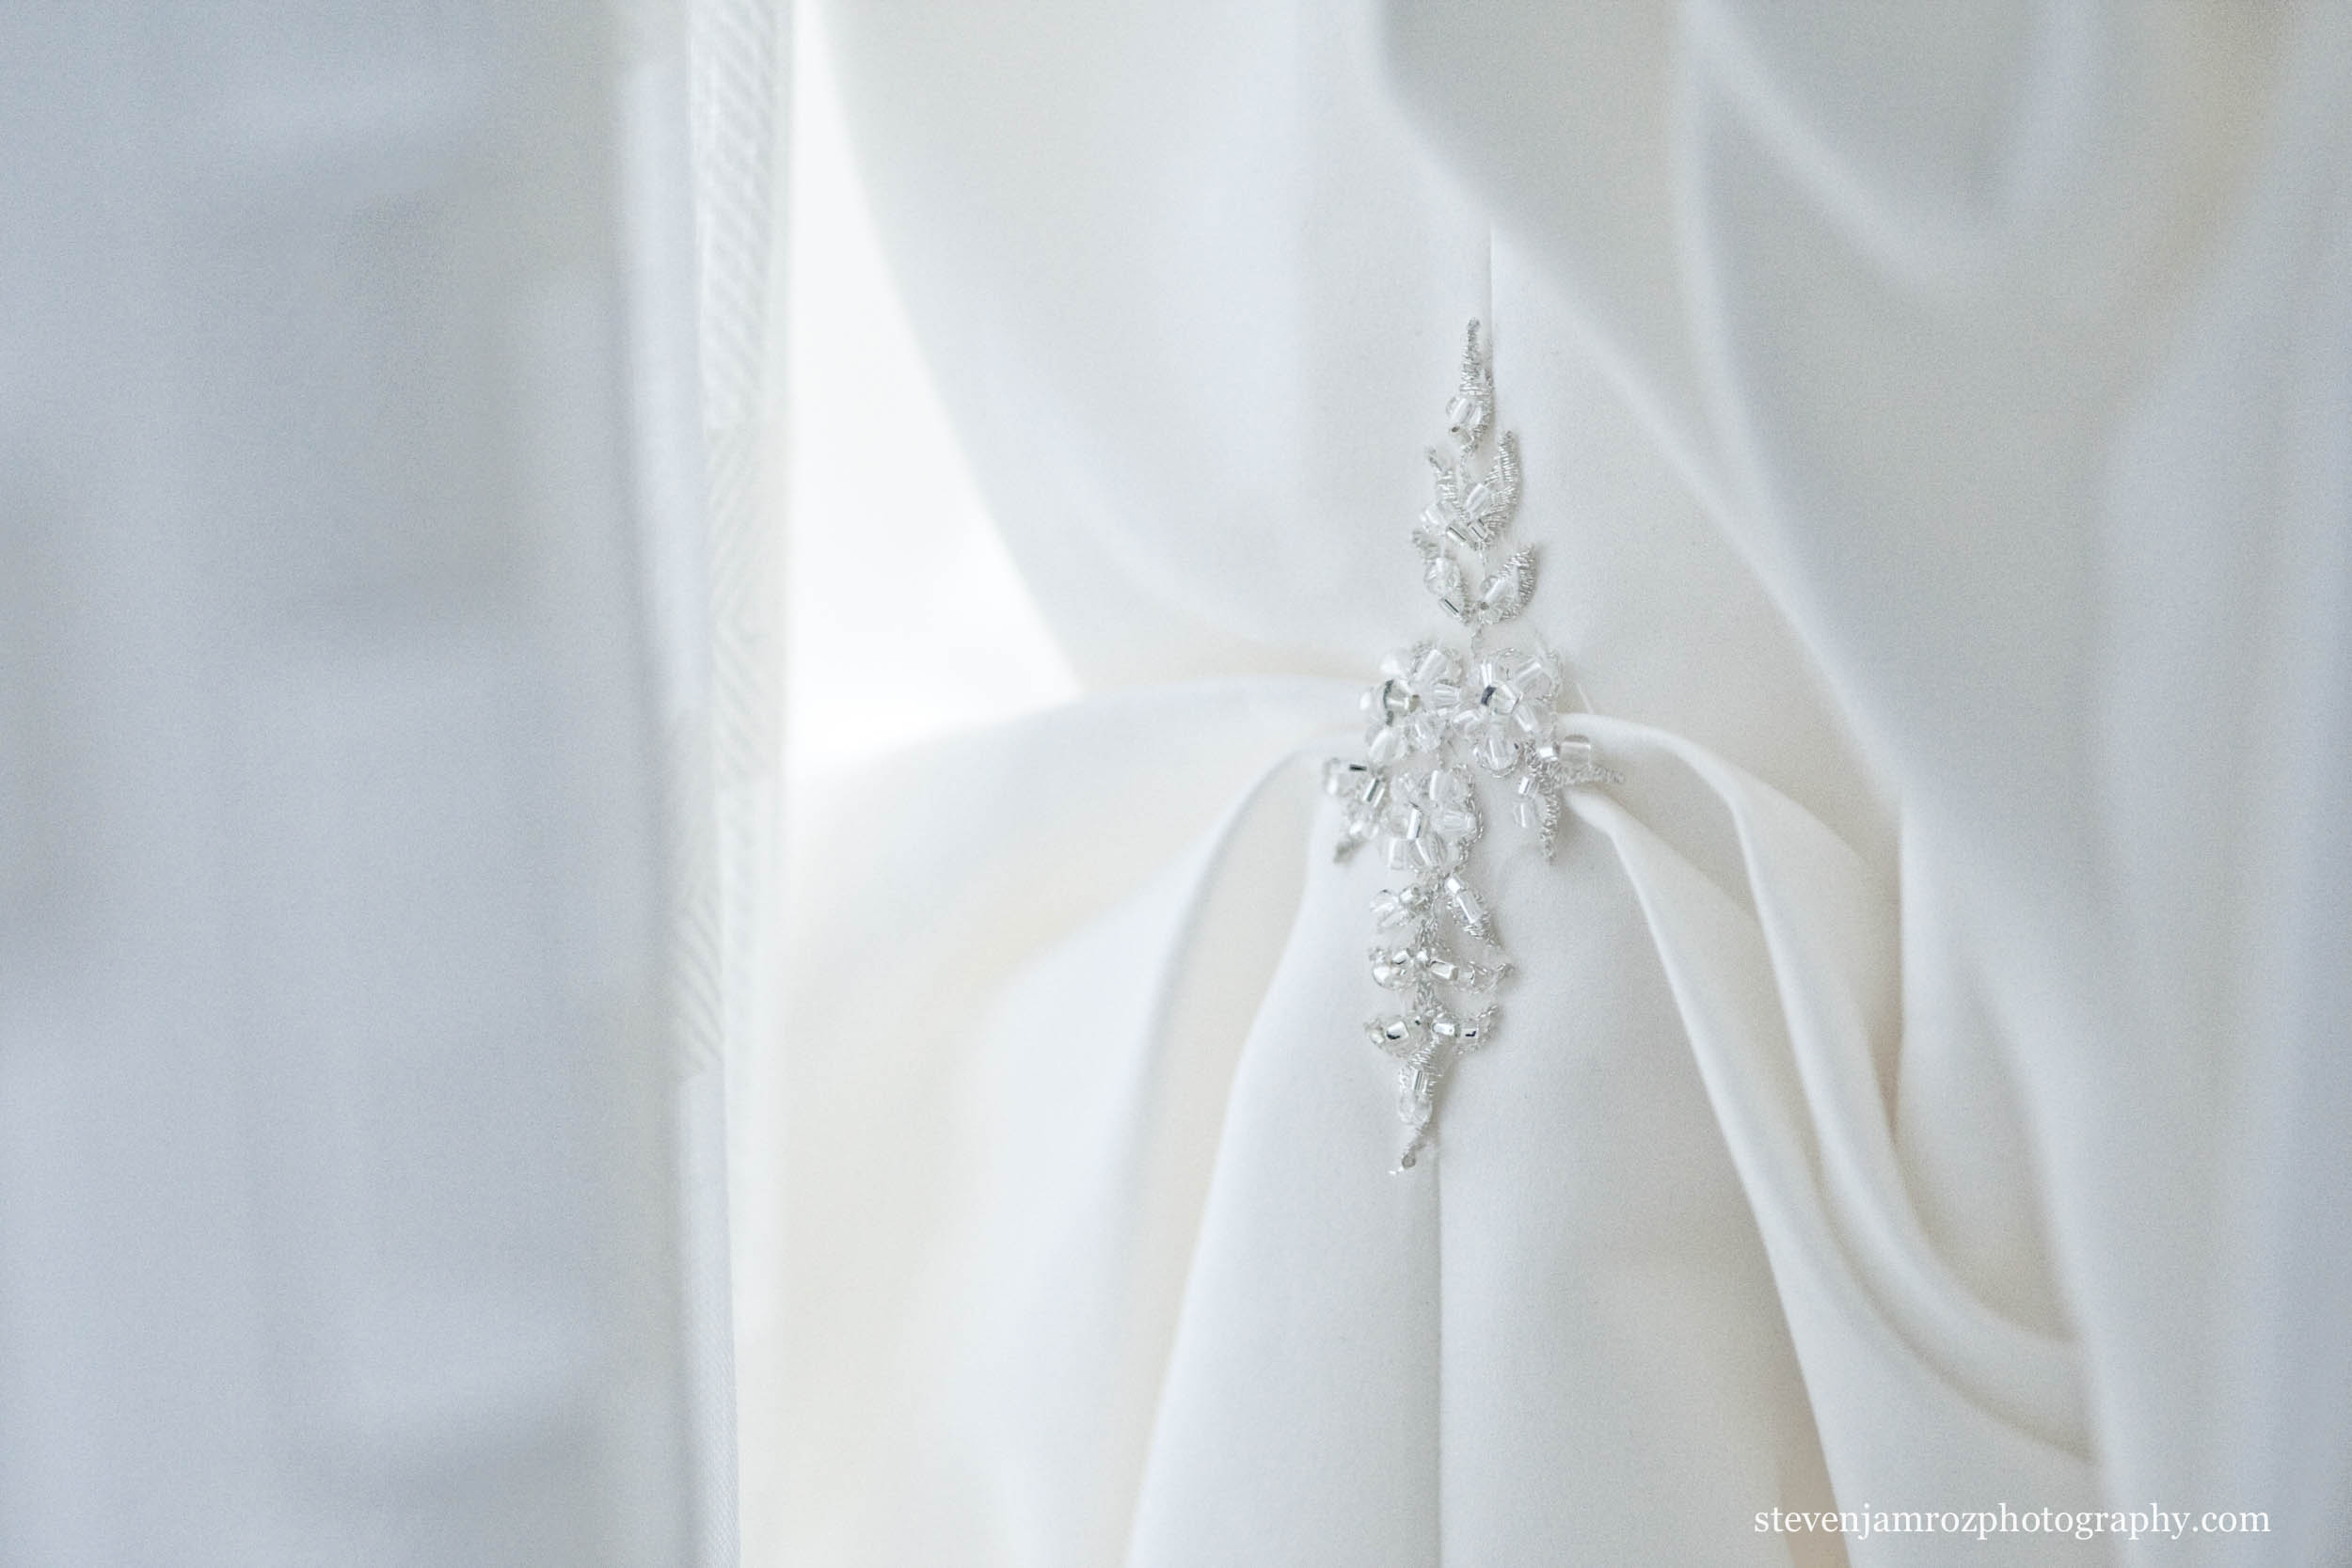 white-wedding-dress-detail-photographer-steven-jamroz-0715.jpg